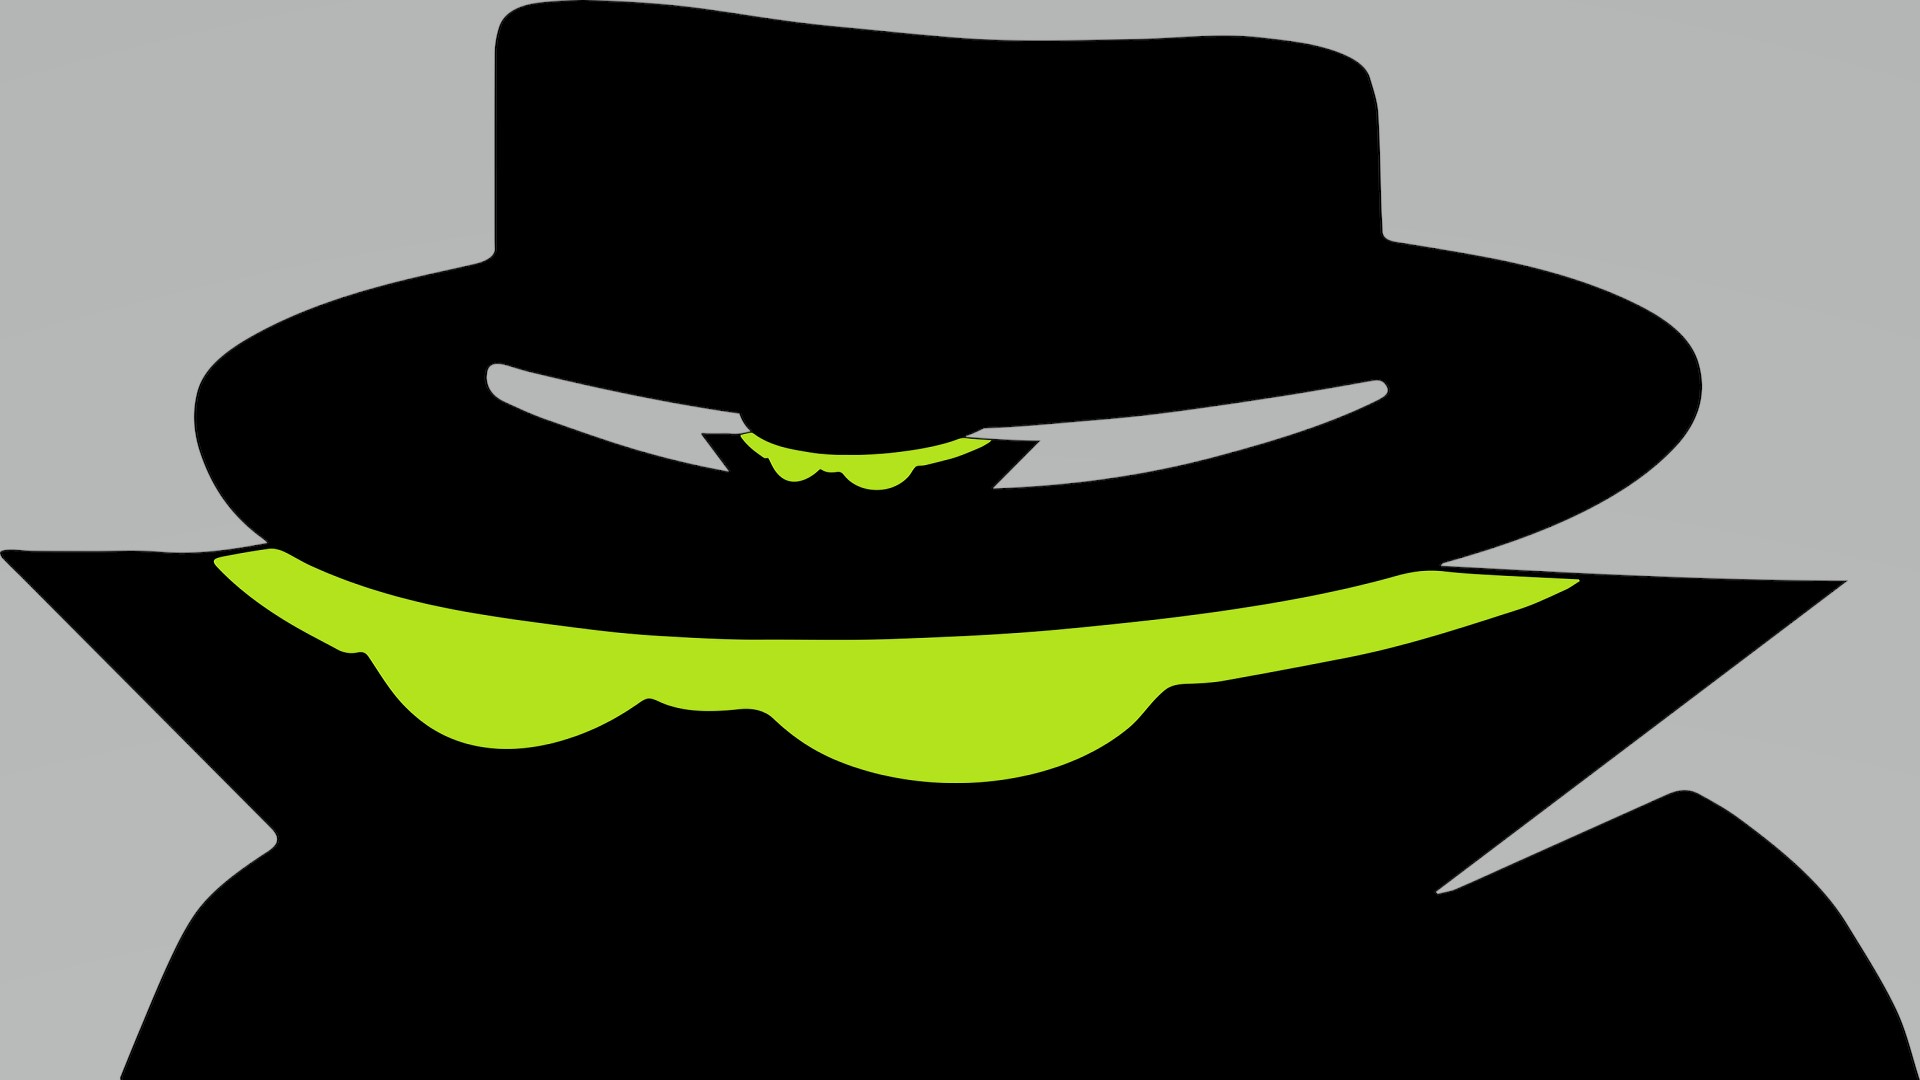 Negative seo is the practice of using black hats.